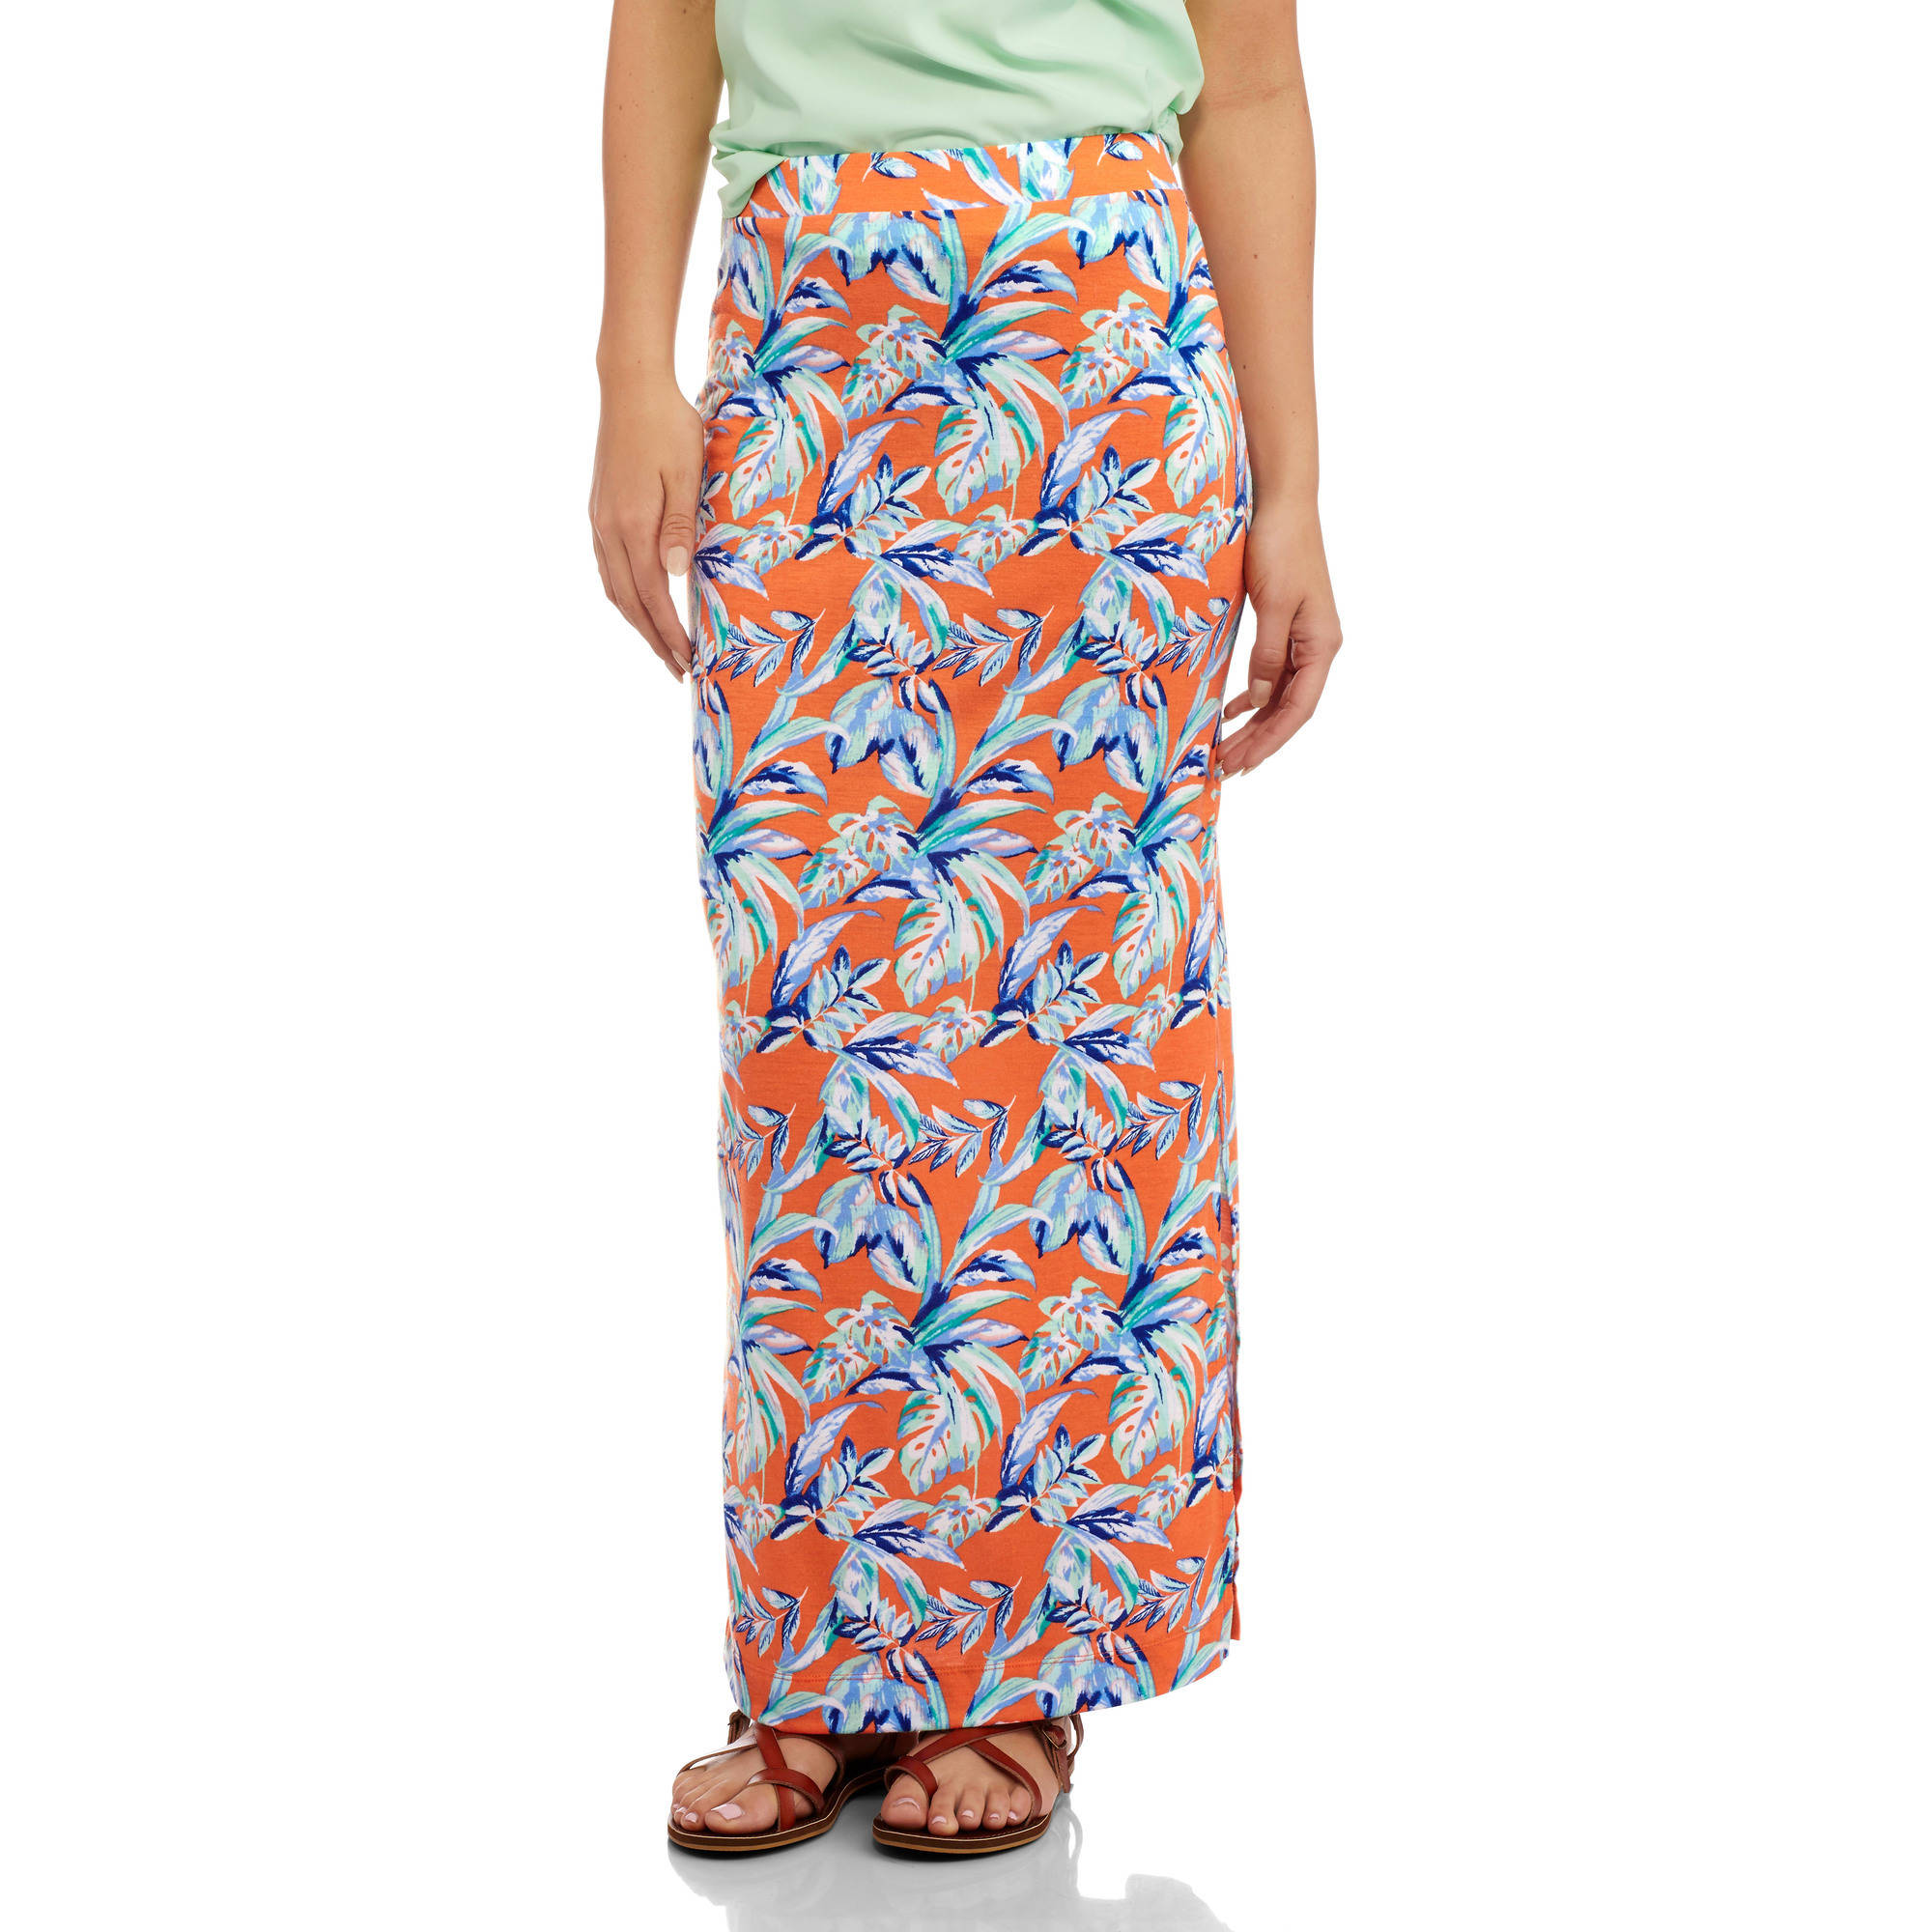 Ocean Pacific Women's Printed Maxi Skirt with Side Slit